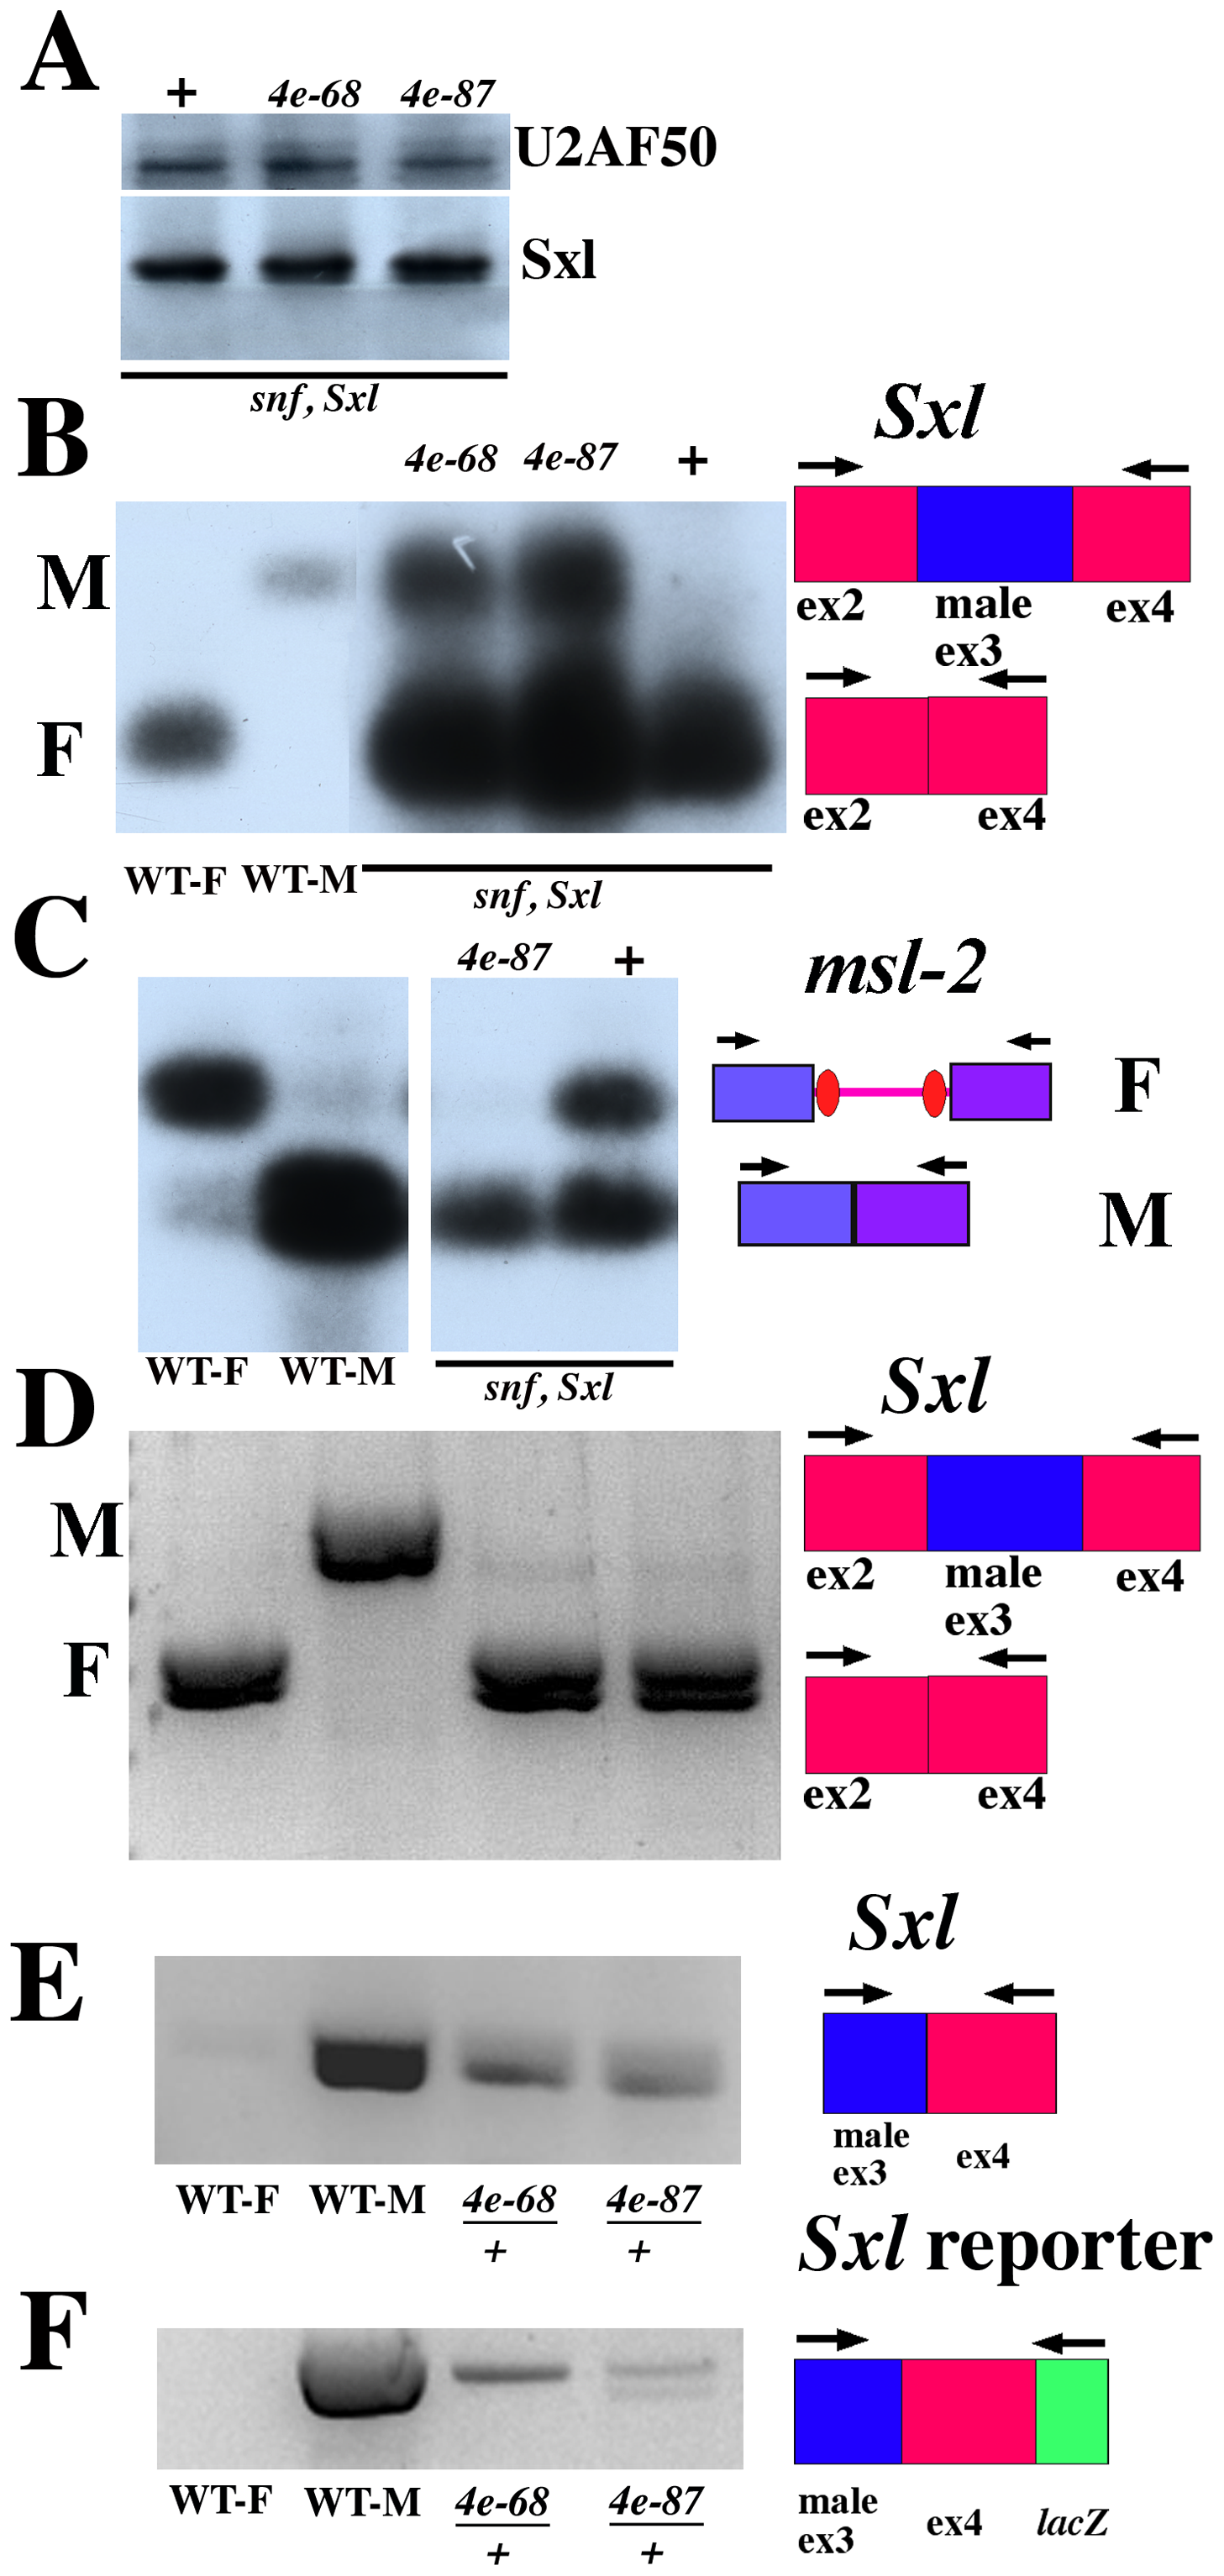 <i>eif4e</i> mutations shift Sxl regulated splicing toward male mode although Sxl protein levels are normal.